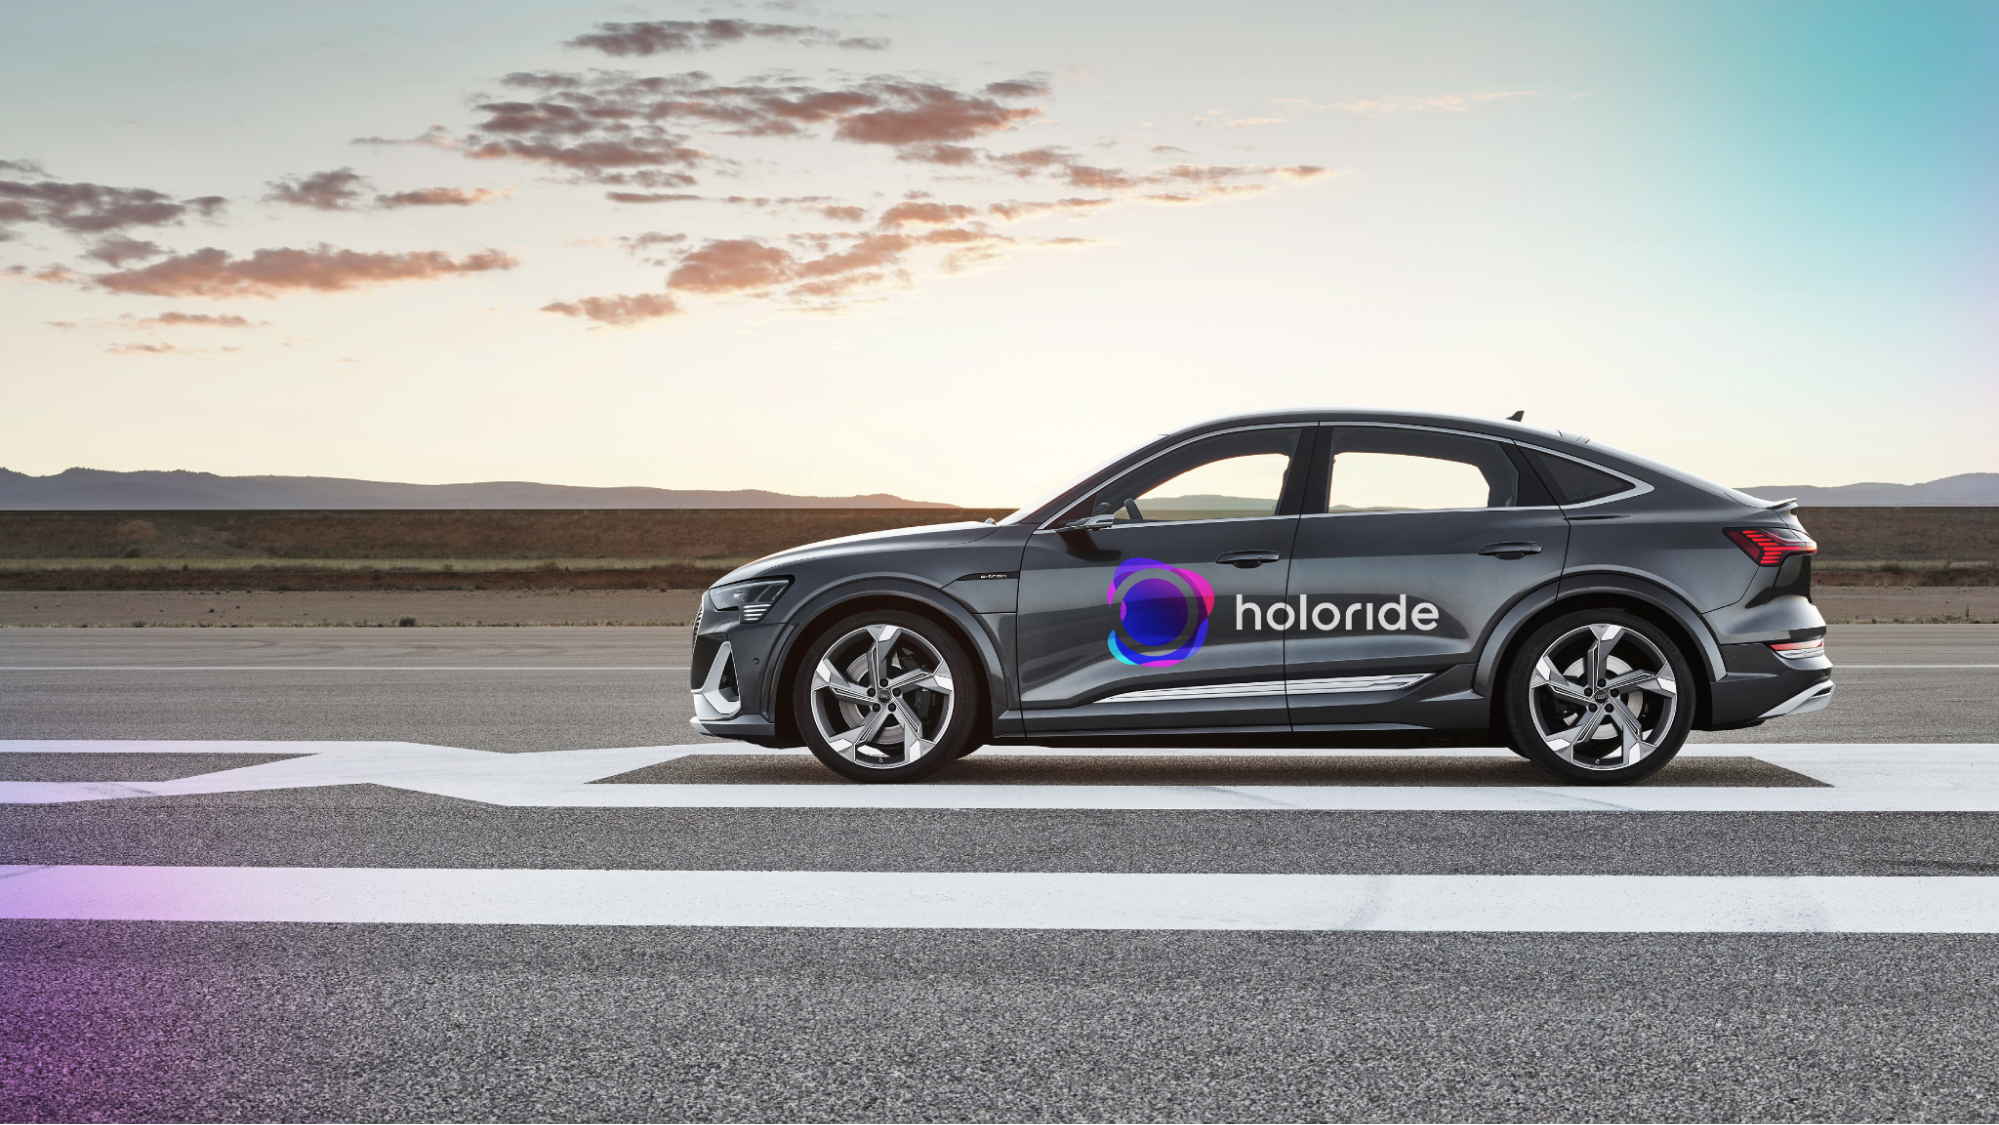 Image of a silver sedan branded with the Holoride logo driving on a road with a mountain range and sunset in the background